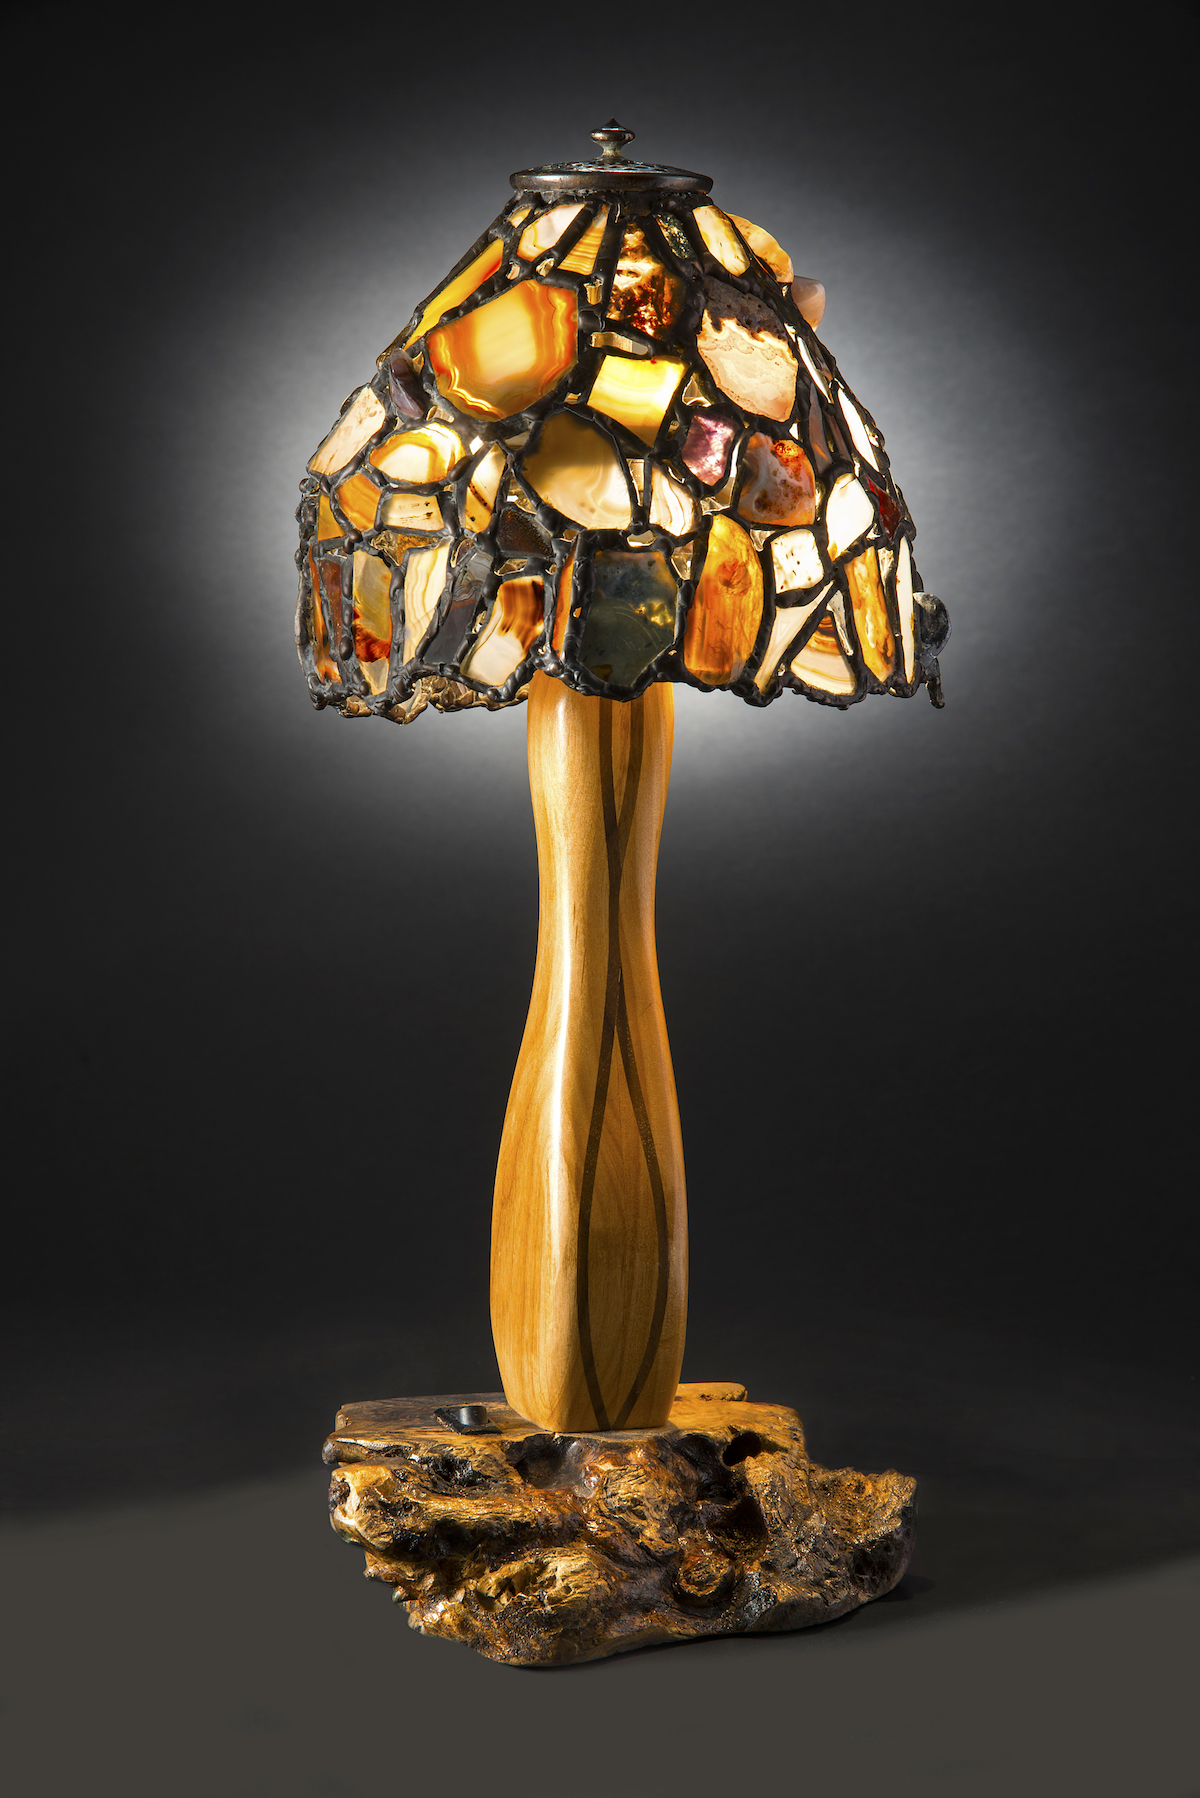 Small Agate Lamp on W... by  Jim Pape - Masterpiece Online